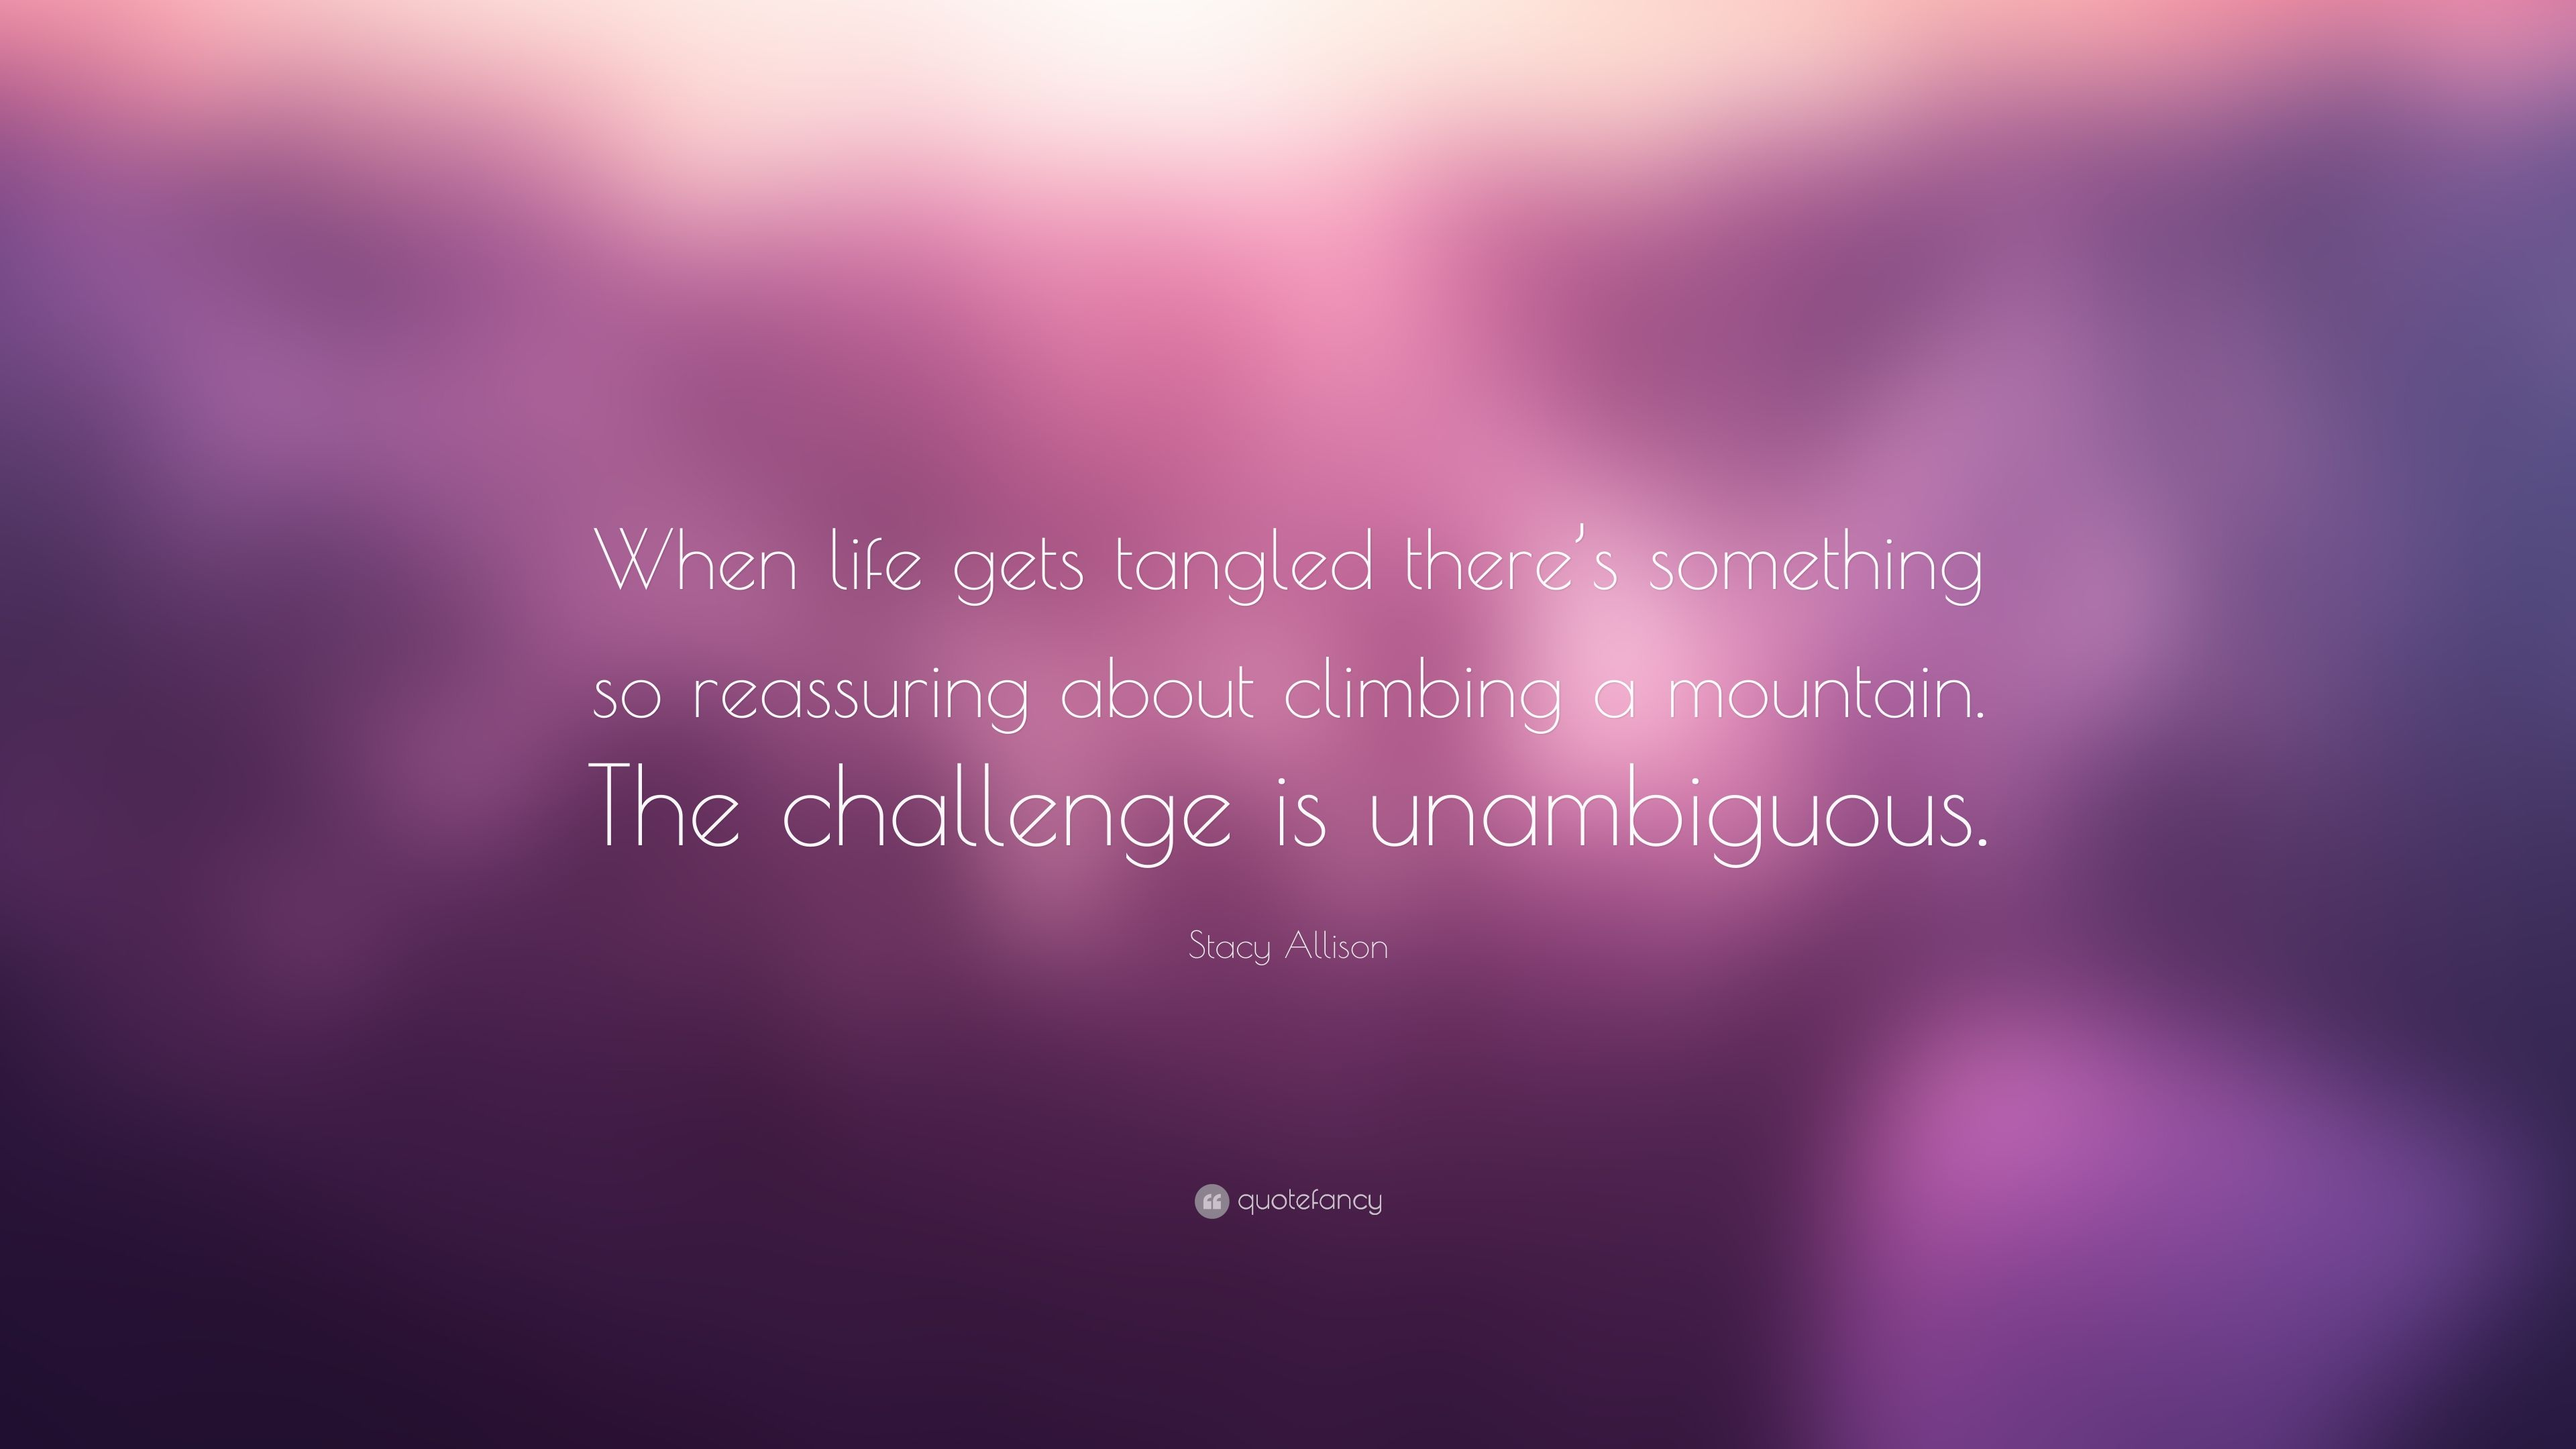 Stacy Allison Quote When Life Gets Tangled There S Something So Reassuring About Climbing A Mountain The Challenge Is Unambiguous 7 Wallpapers Quotefancy